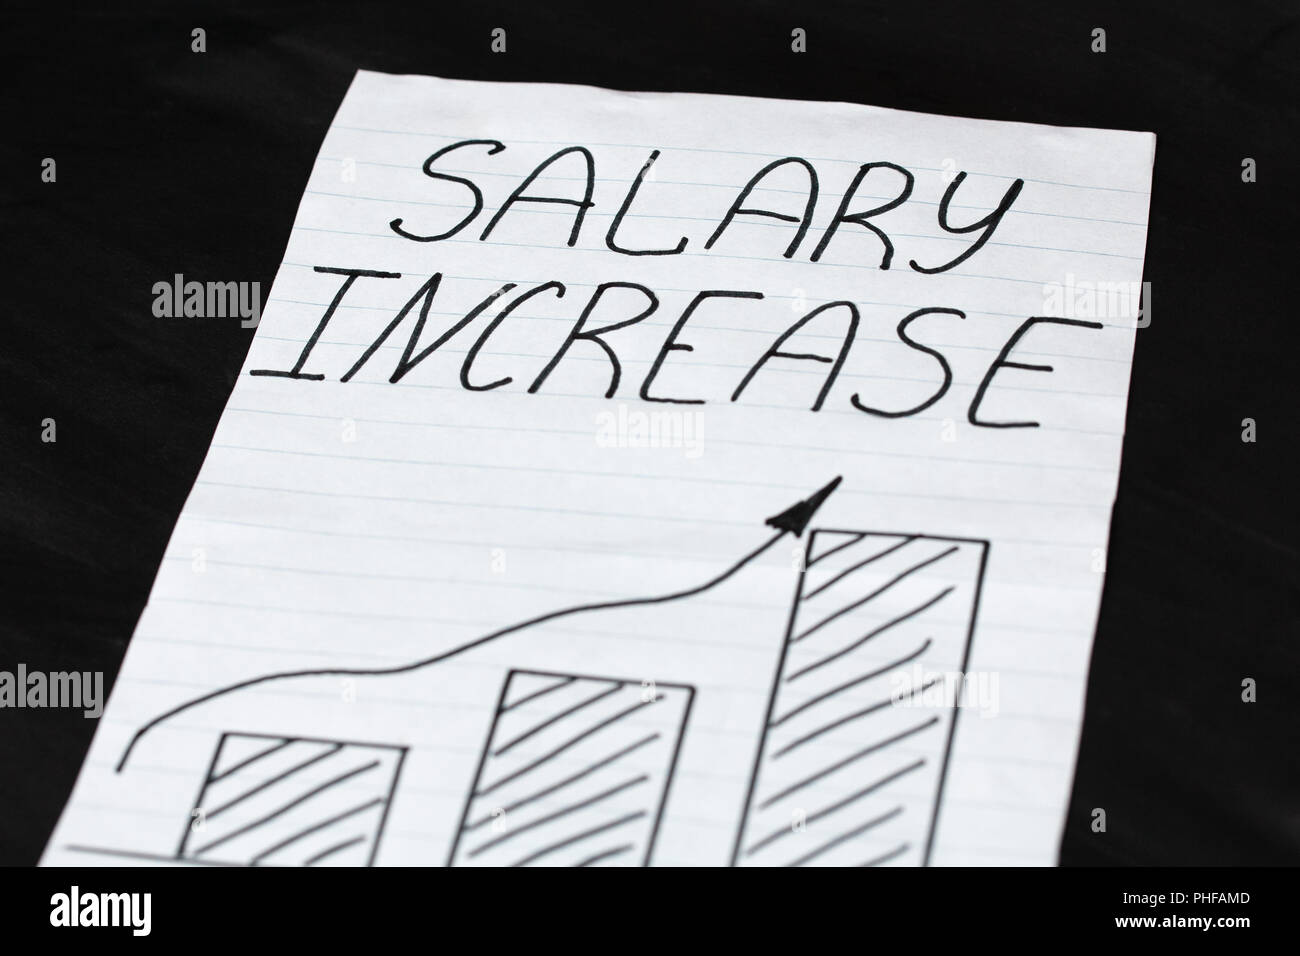 Handwritten Text Salary Increase With A Growth Chart On A Black